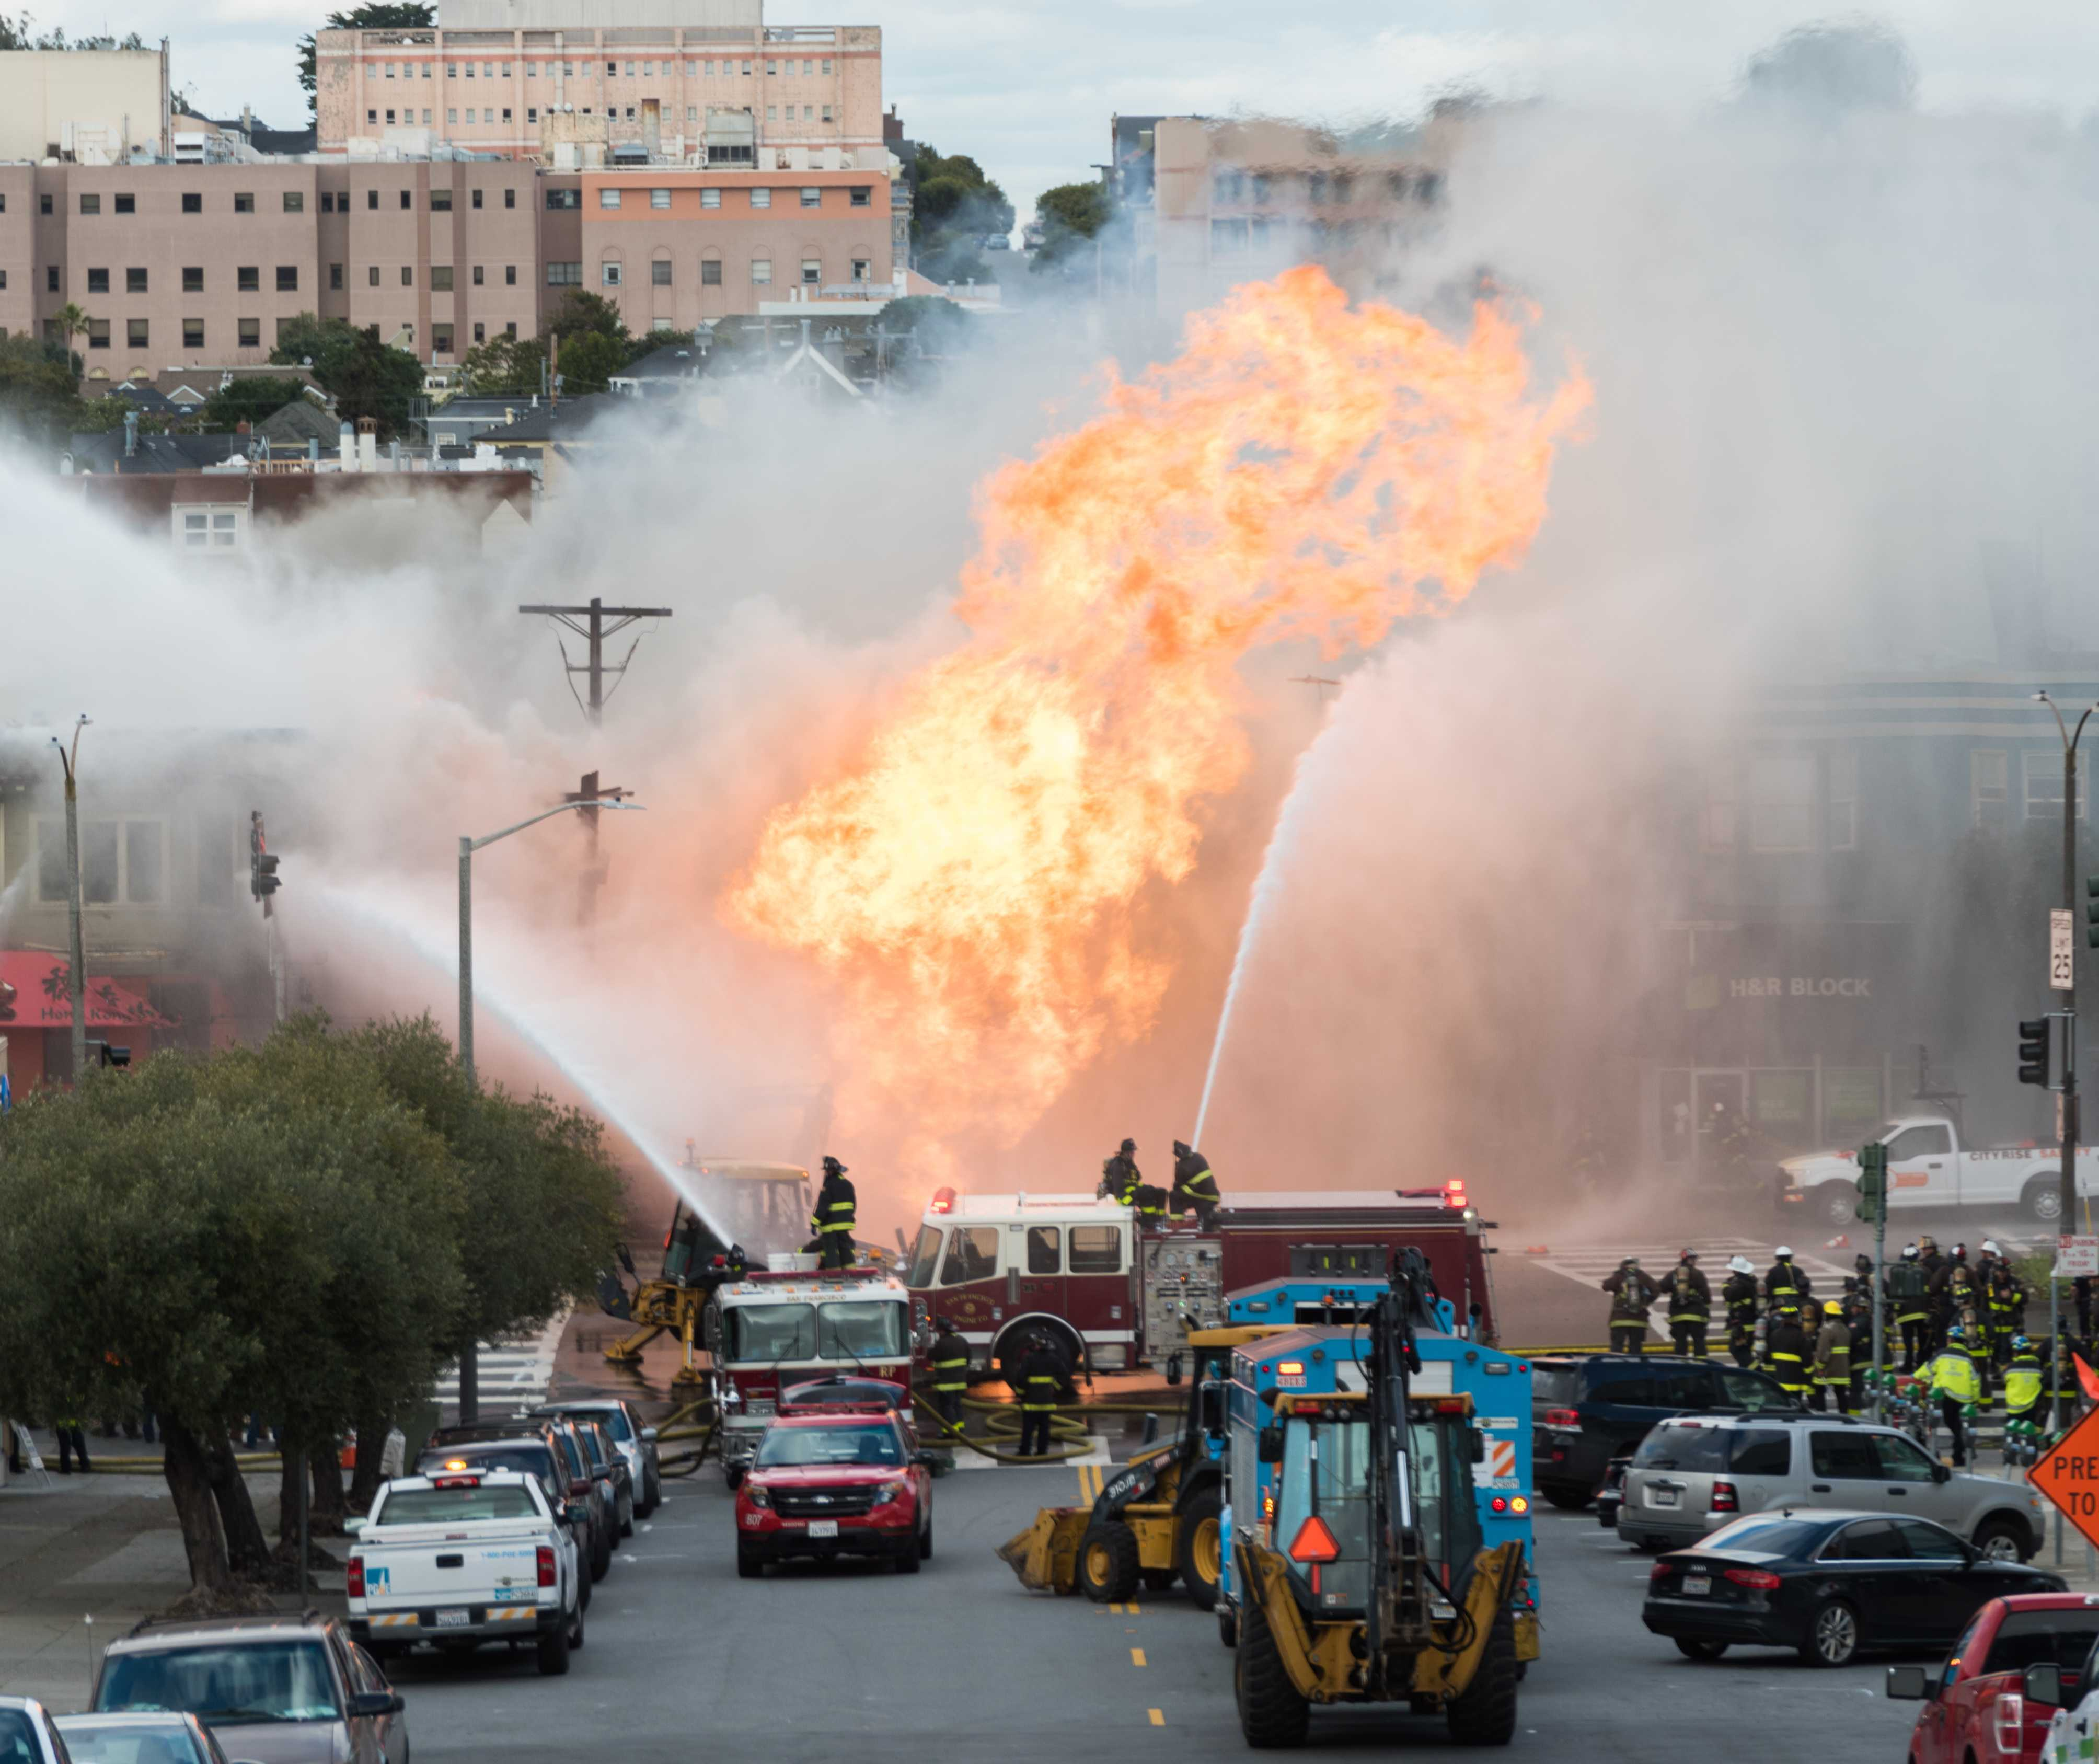 Flames engulf a building near the intersection of Geary Boulevard and Parker Avenue in the Inner Richmond district of San Francisco, Calif., on Wednesday, Feb. 6, 2019.